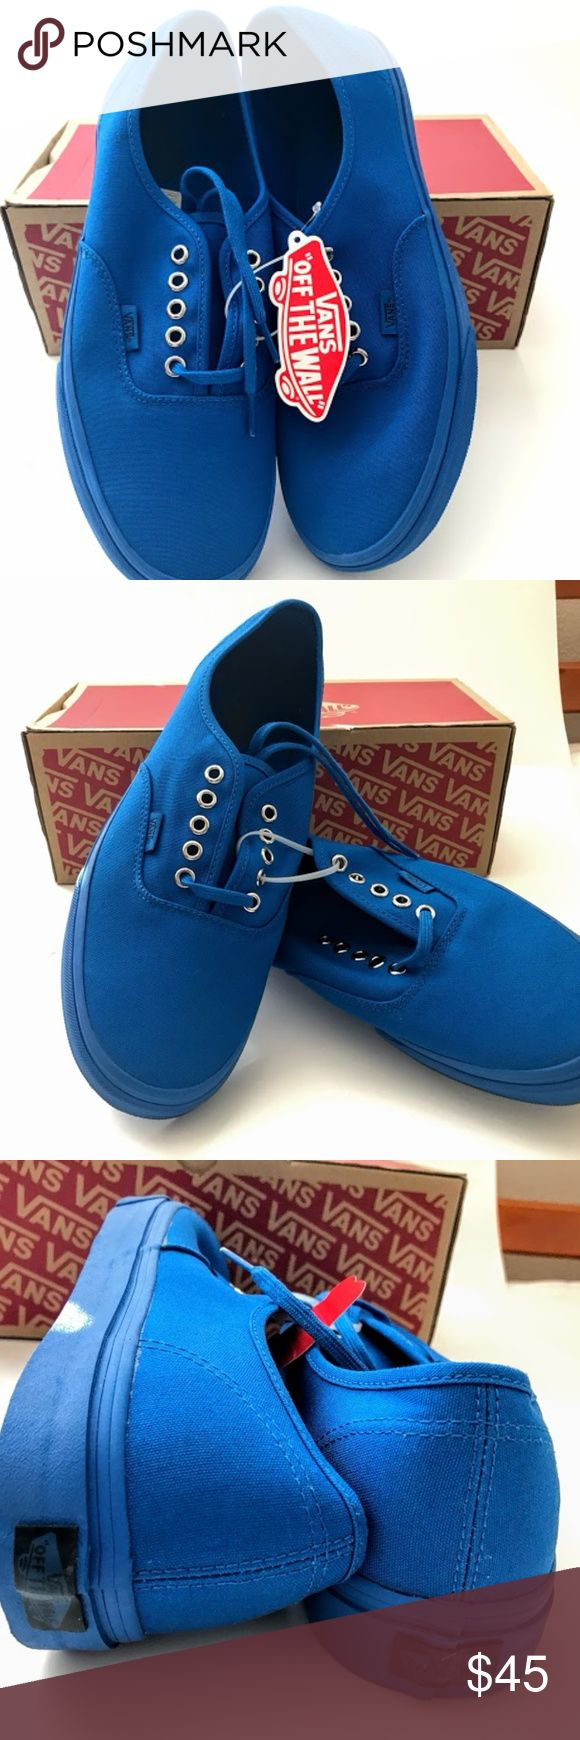 VANS NWT NIB AUTHENTIC PRO SZ 10 BLUE NEW MEN UP FOR SALE IS  VANS NEW IN BOX WITH TAG AUTHENTIC PRIMARY MONO (BLUE) IMPERIAL B  SIZE 10 MENS Vans Shoes Sneakers